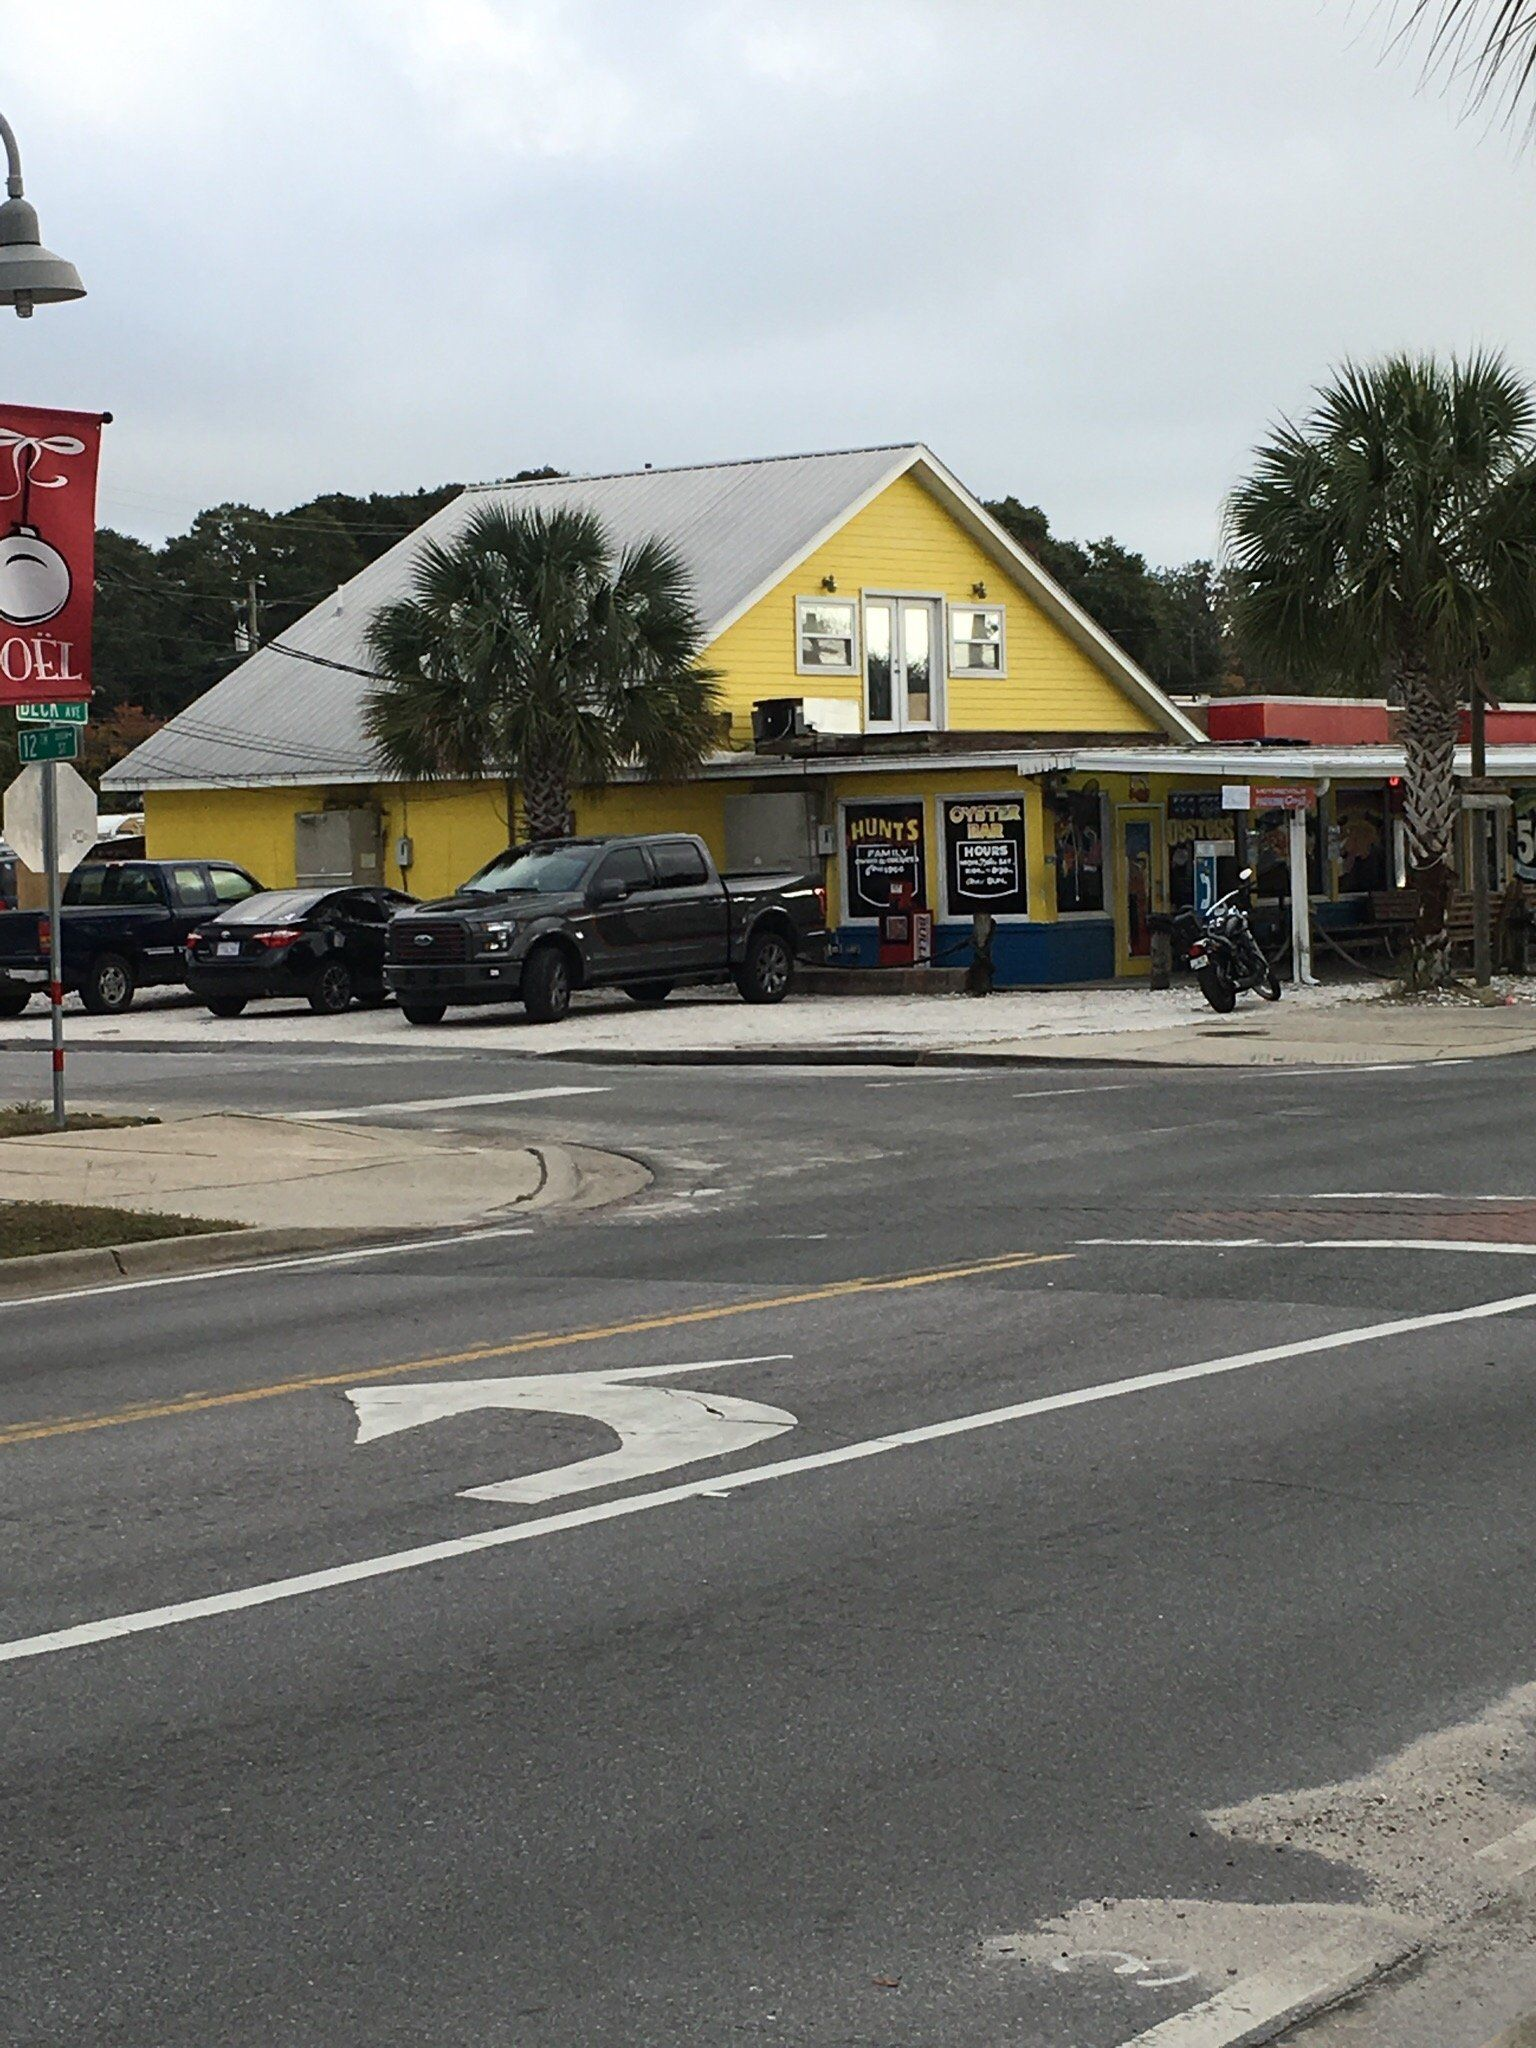 Hunt S Oyster Bar Seafood Restaurant Panama City See 1 137 Unbiased Reviews Of Hunt S Oyster Bar Seafood Restaurant Rated 4 Panama City Panama Panama City Restaurants Seafood Restaurant